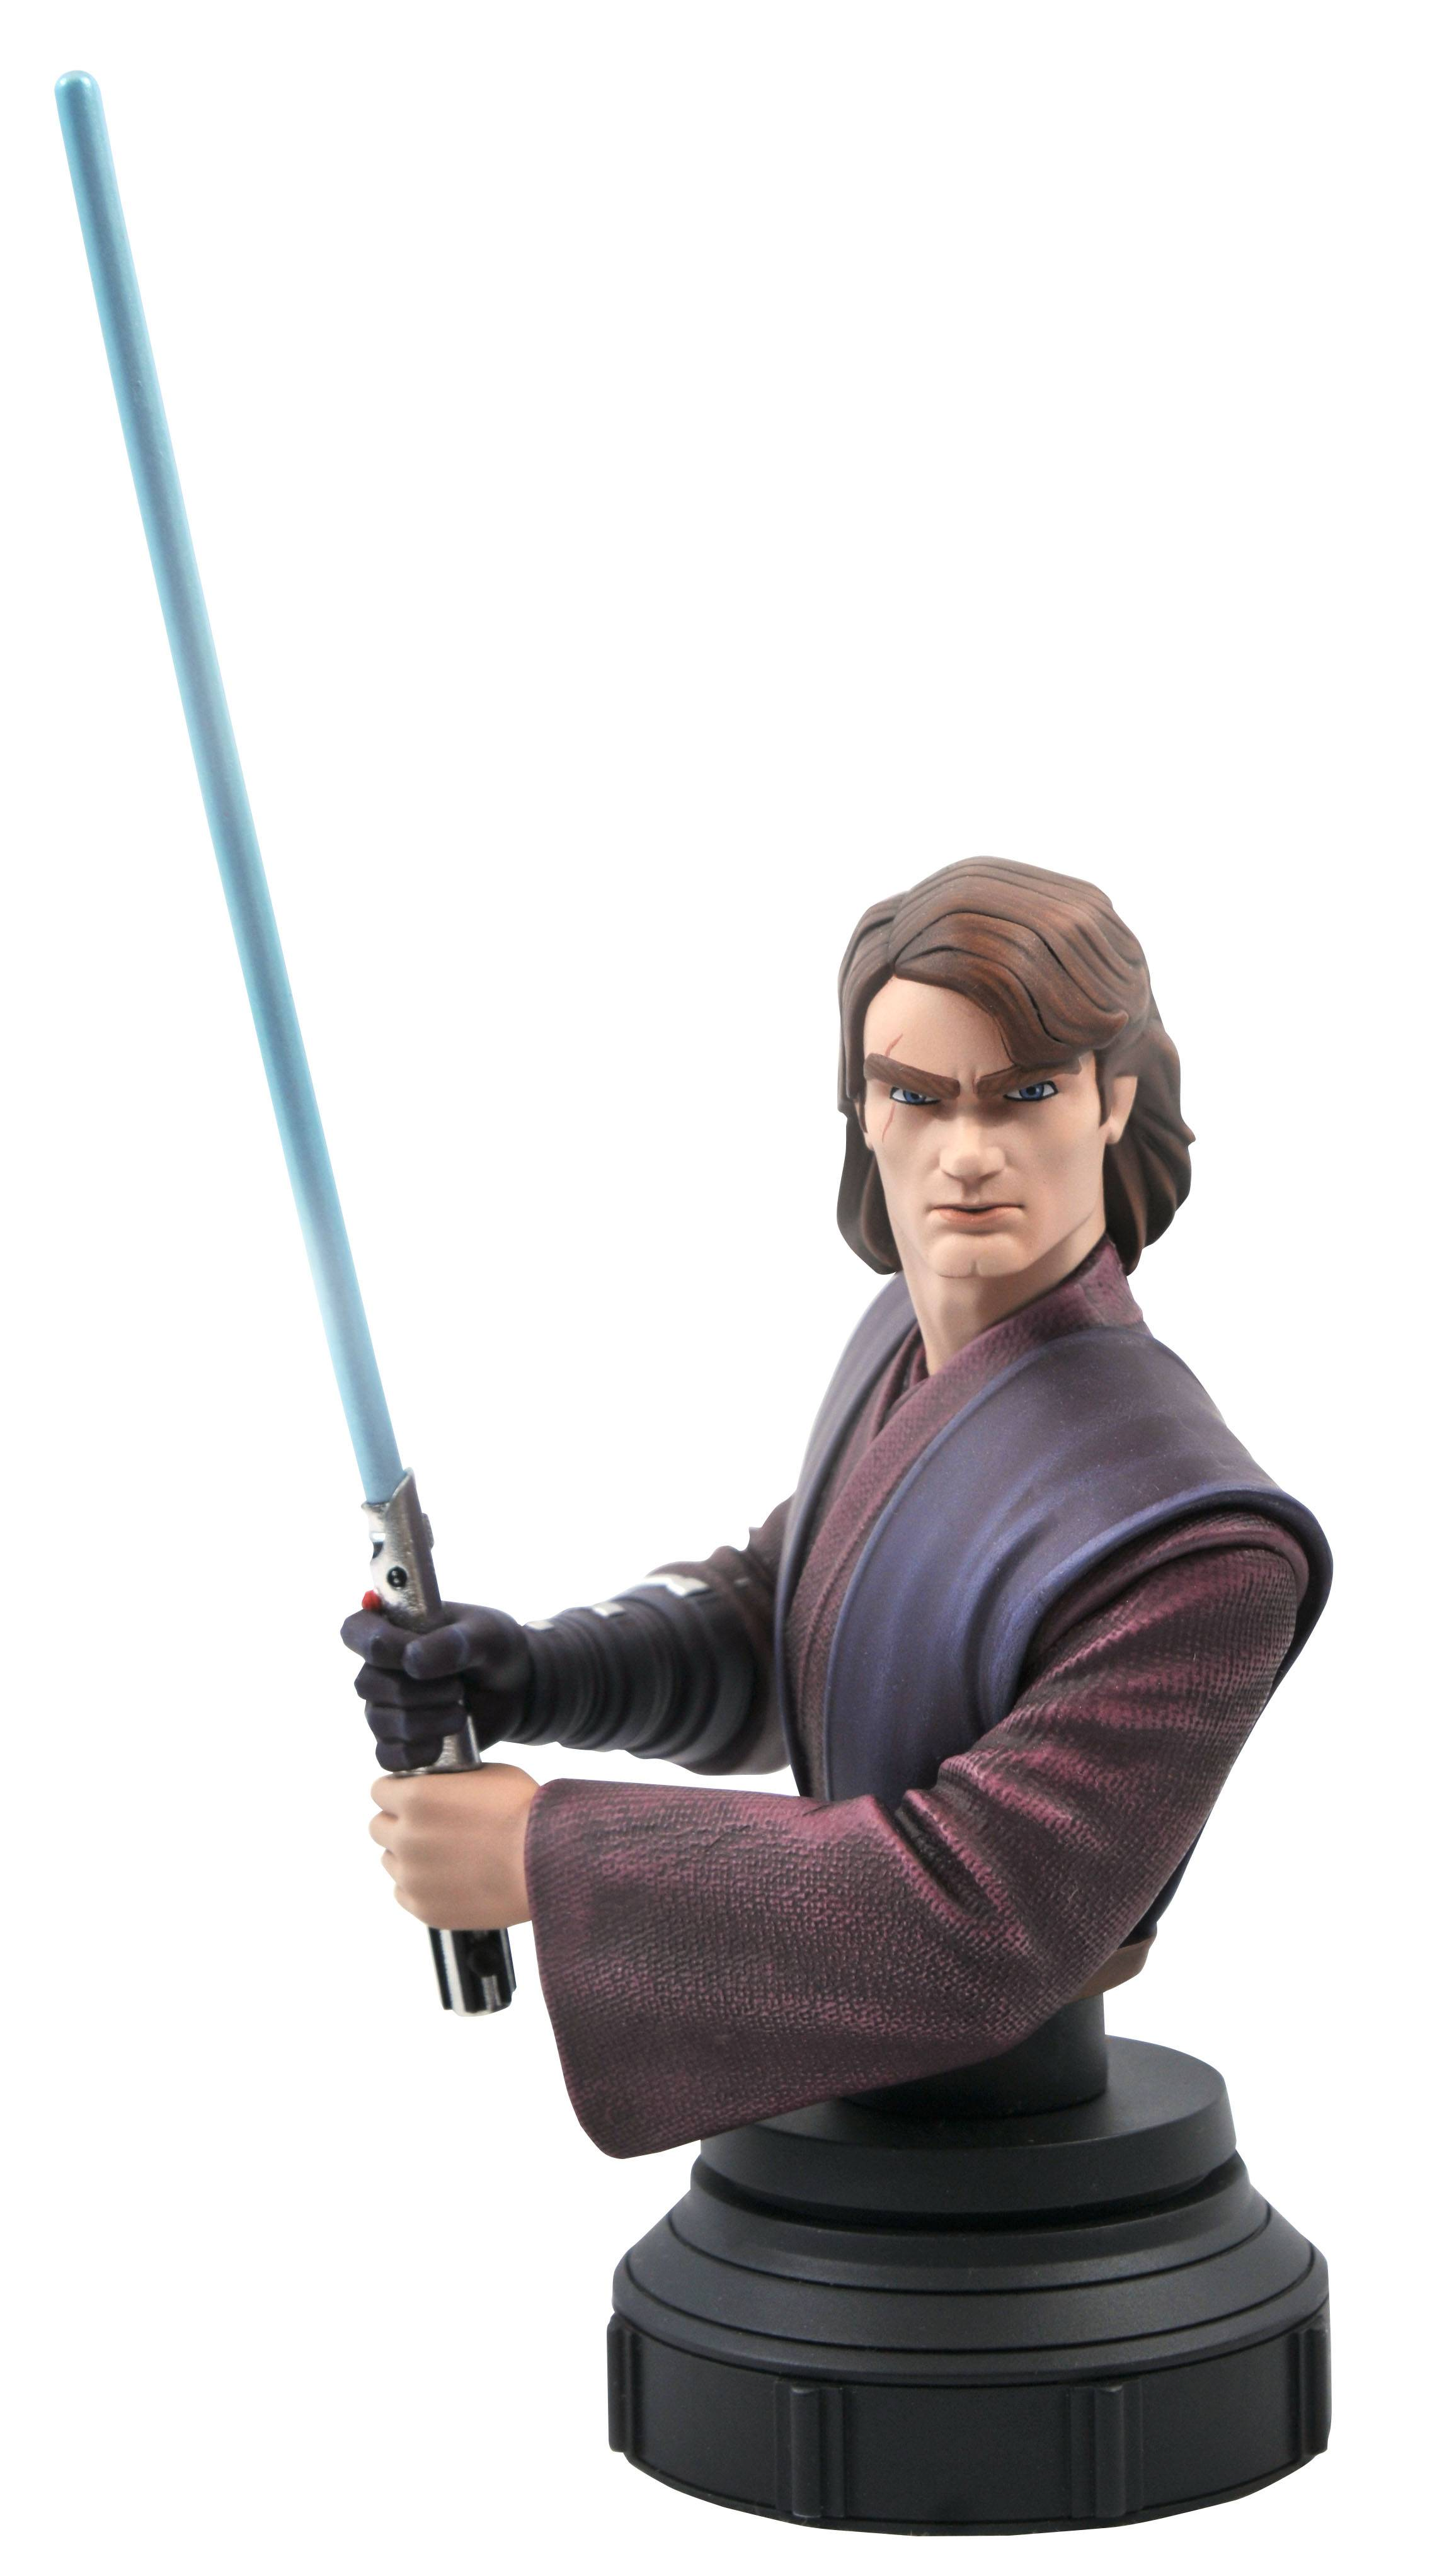 STAR WARS CLONE WARS ANAKIN SKYWALKER 1/7 SCALE BUST